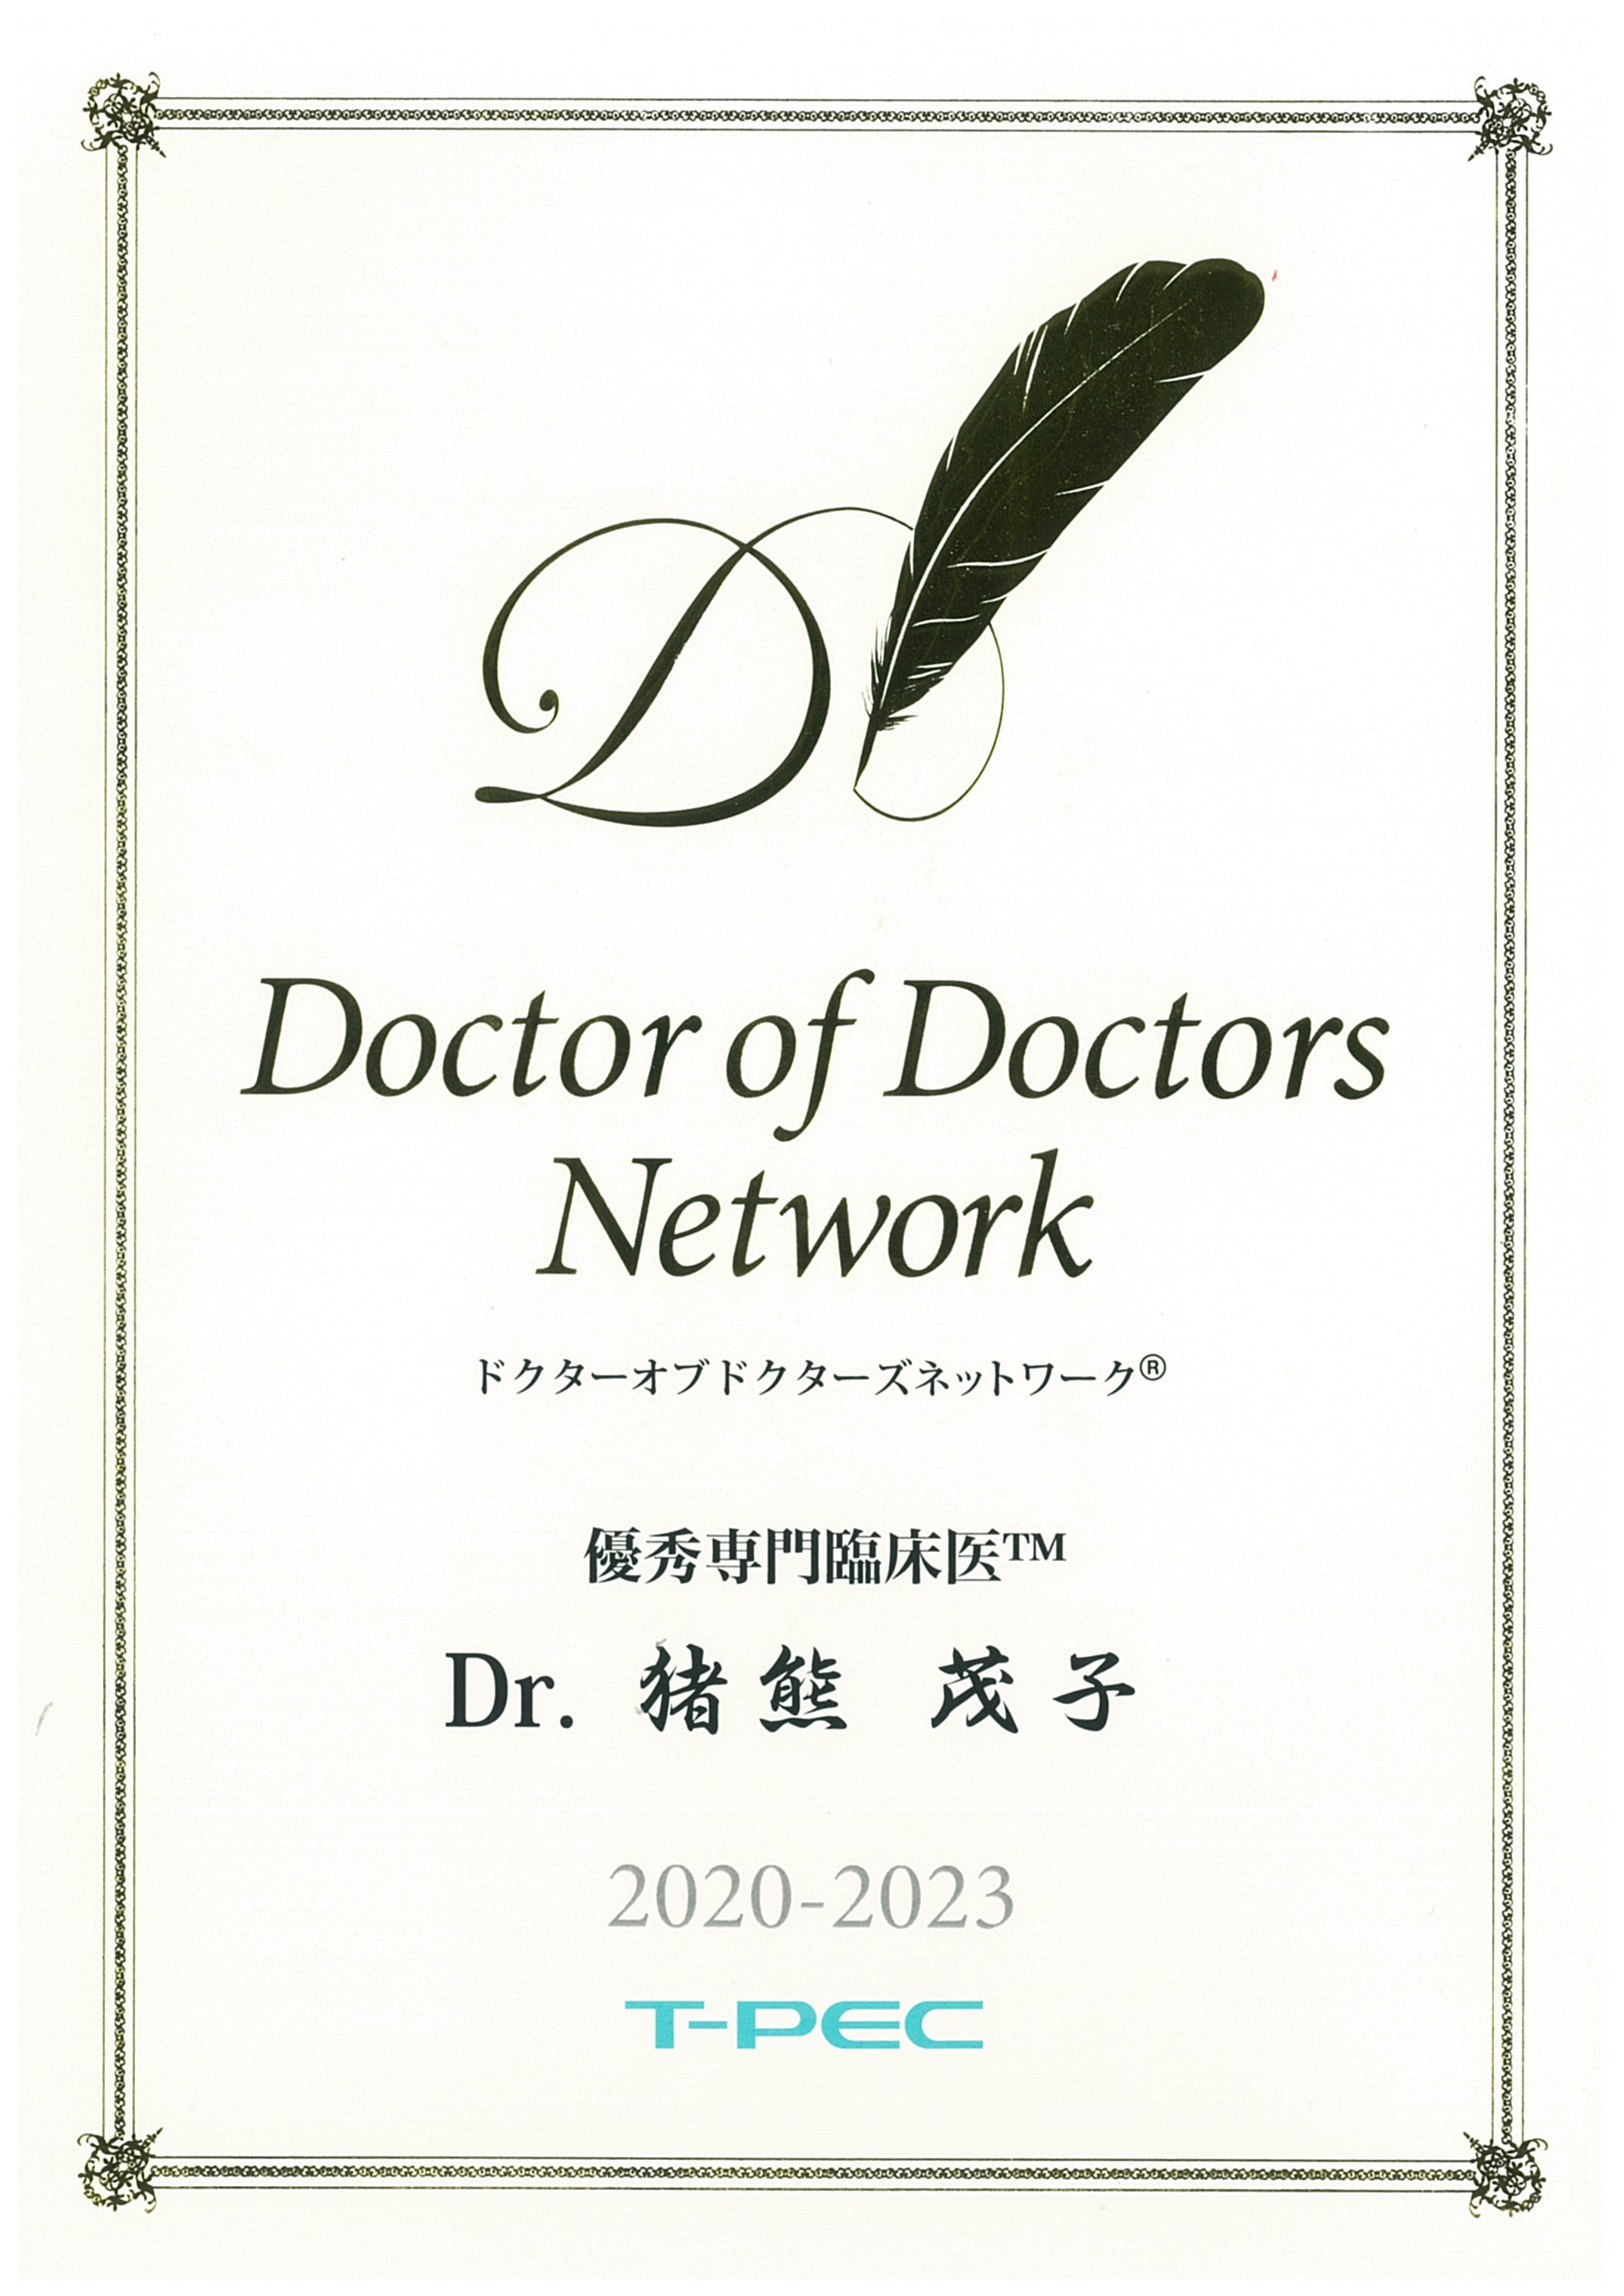 DoctorsNetwork_2020-2023